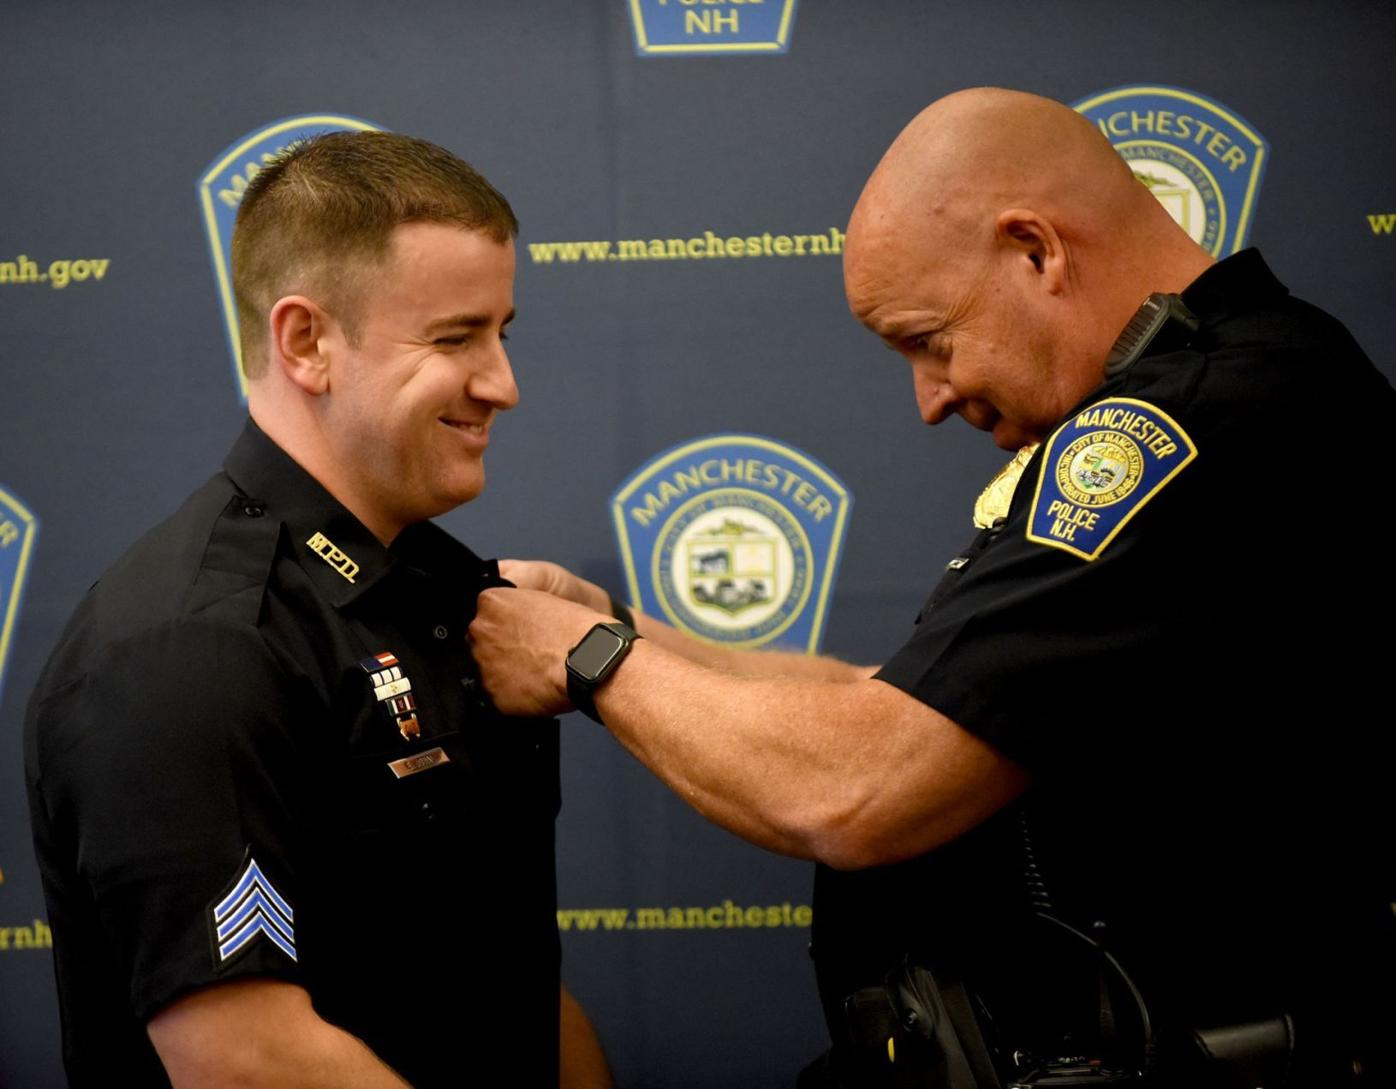 Manchester Police Ceremony